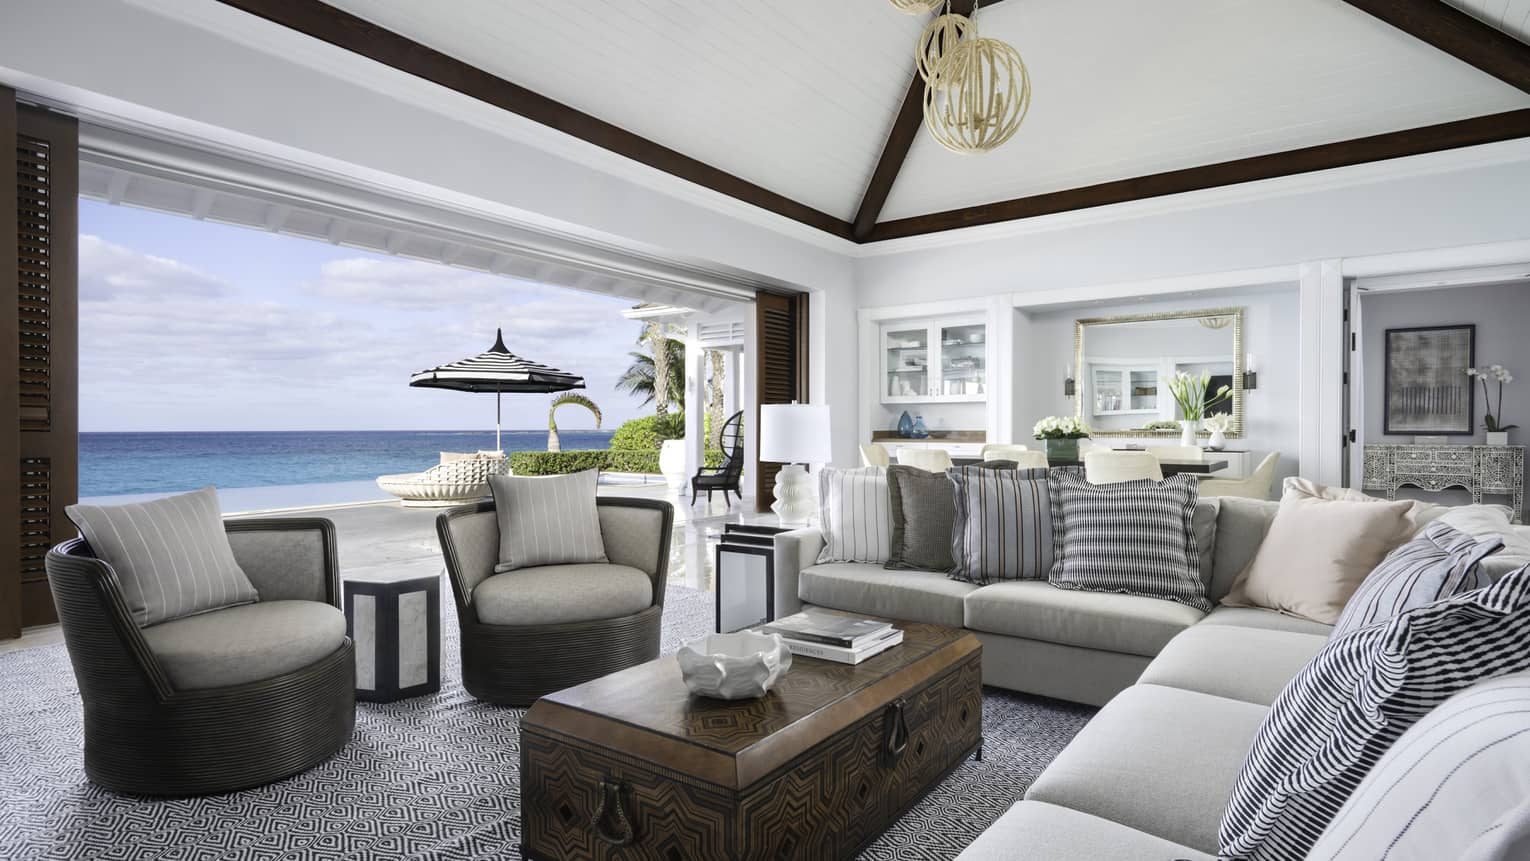 Beachfront Villa Residence large living room with modular sofa, armchairs by open wall to patio overlooking ocean